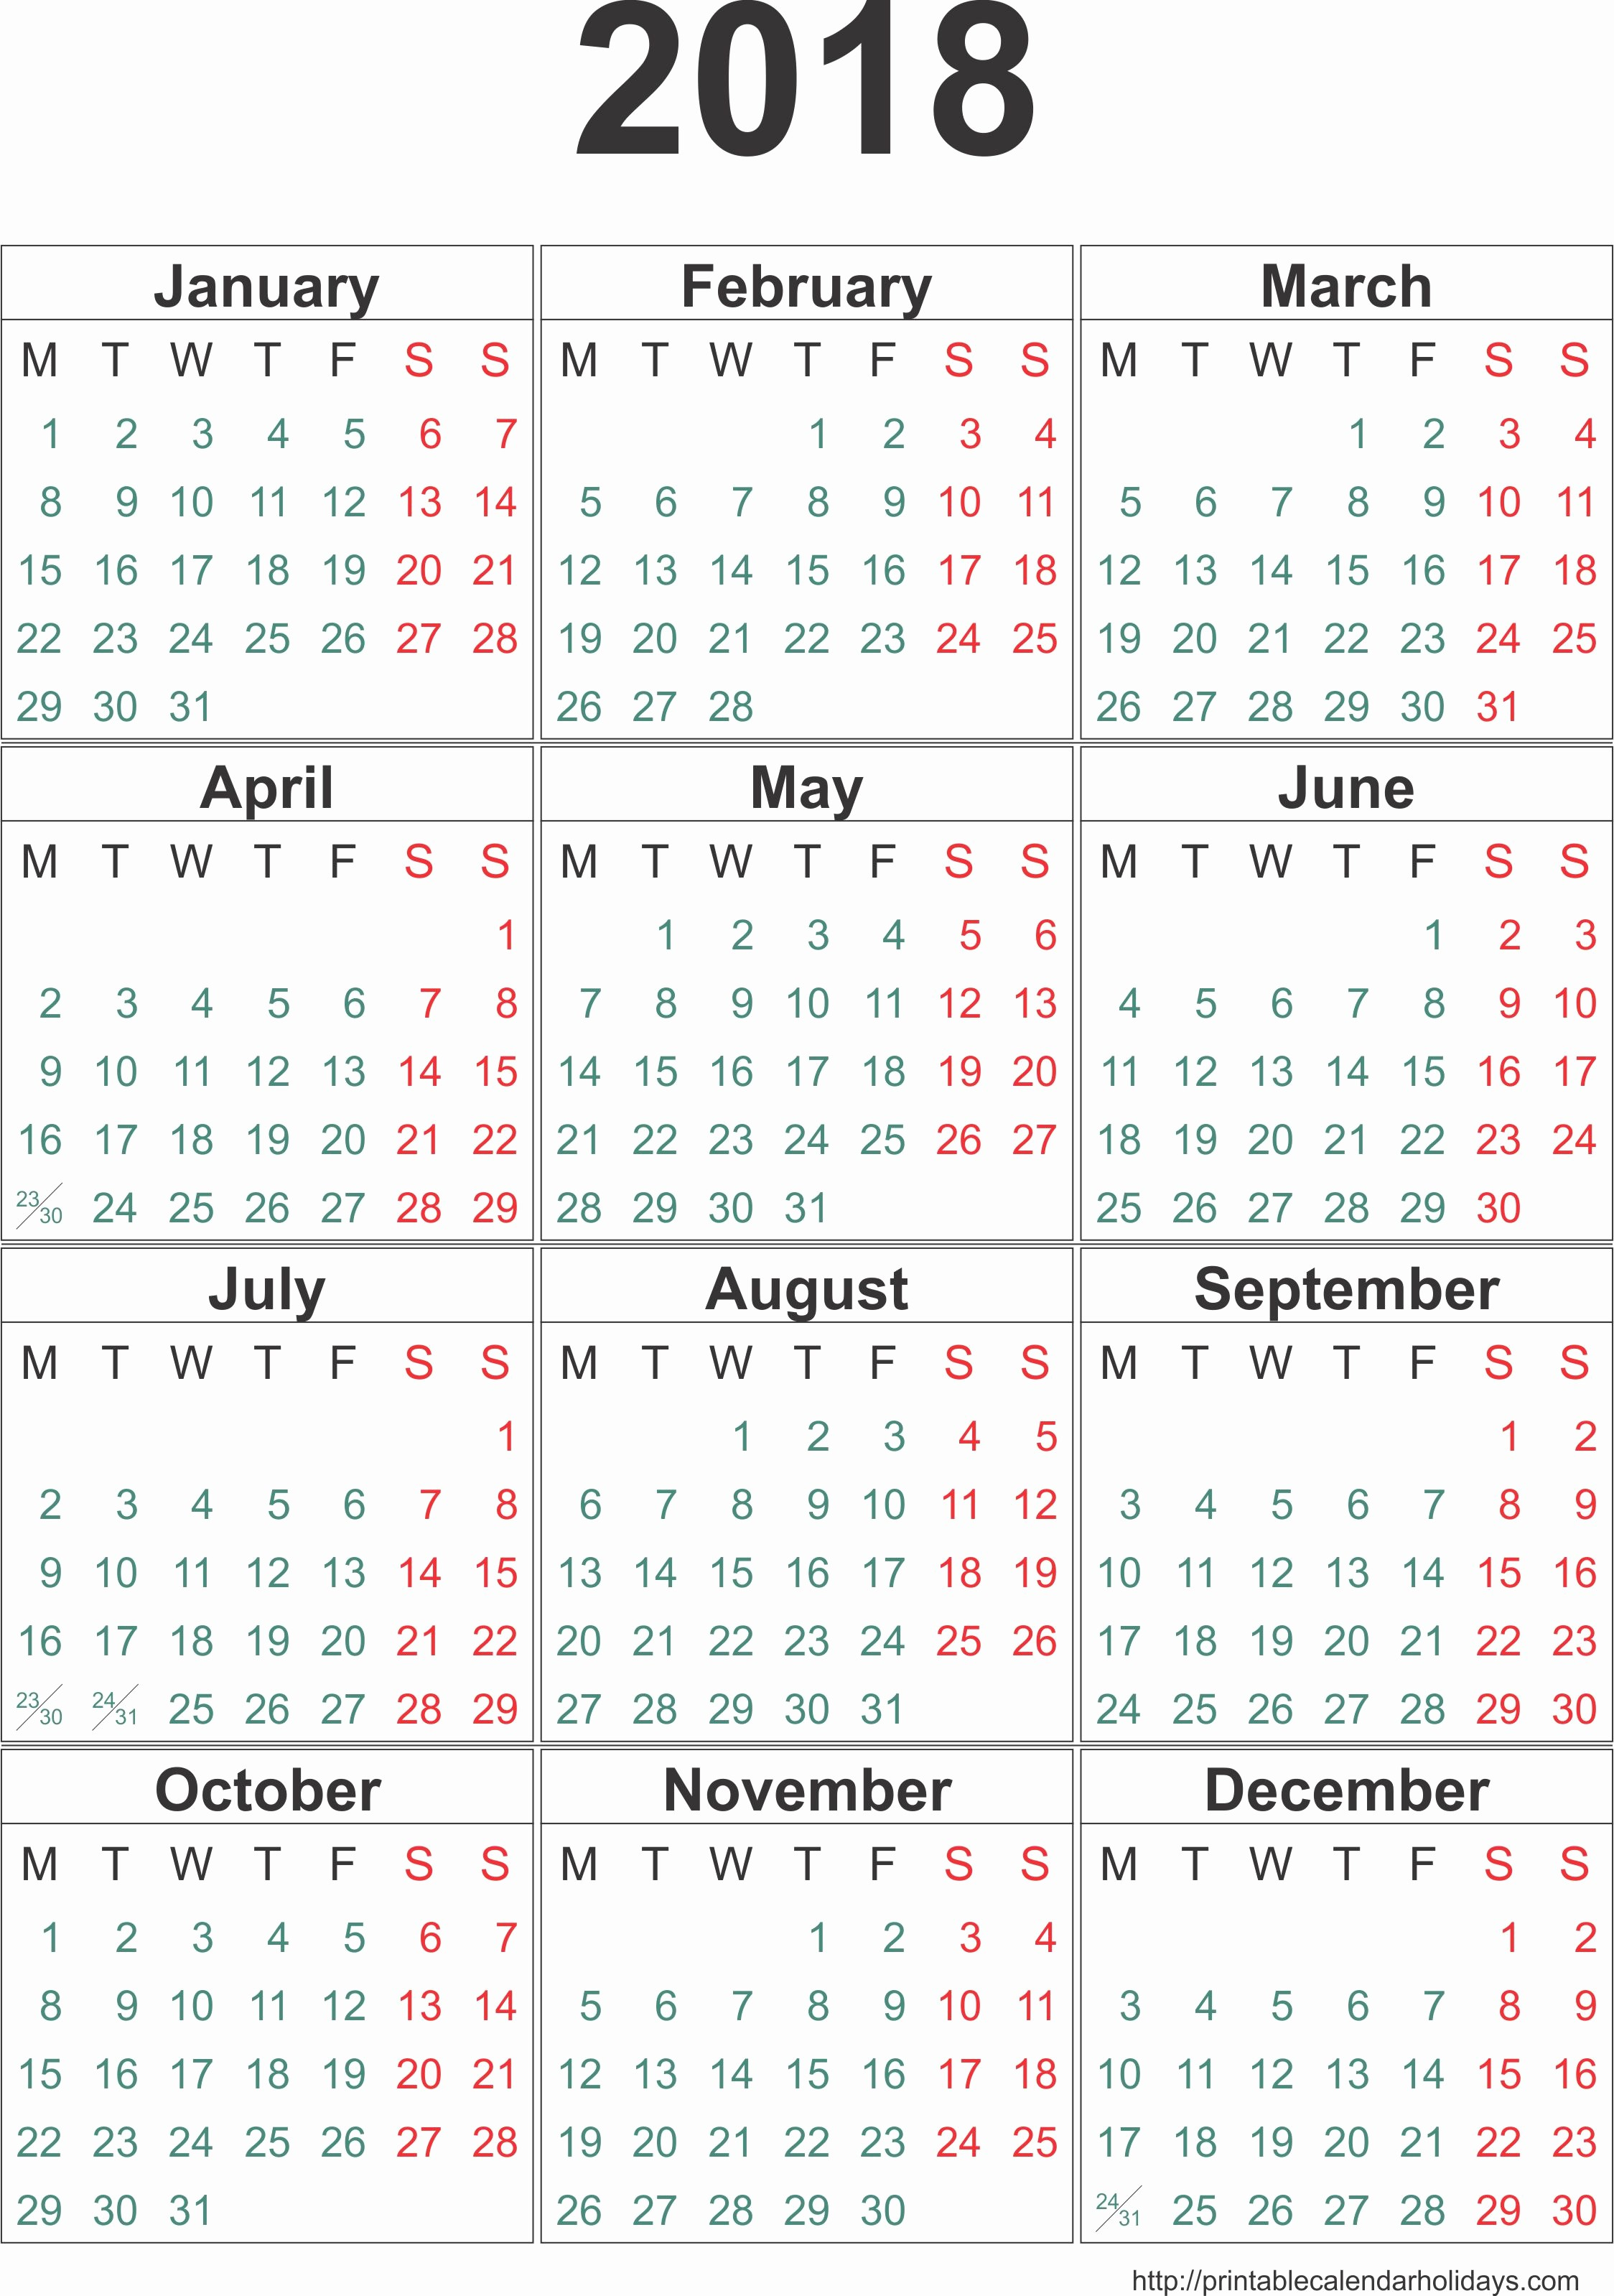 2018 Four Month Calendar Template Awesome Yearly Calendar 2018